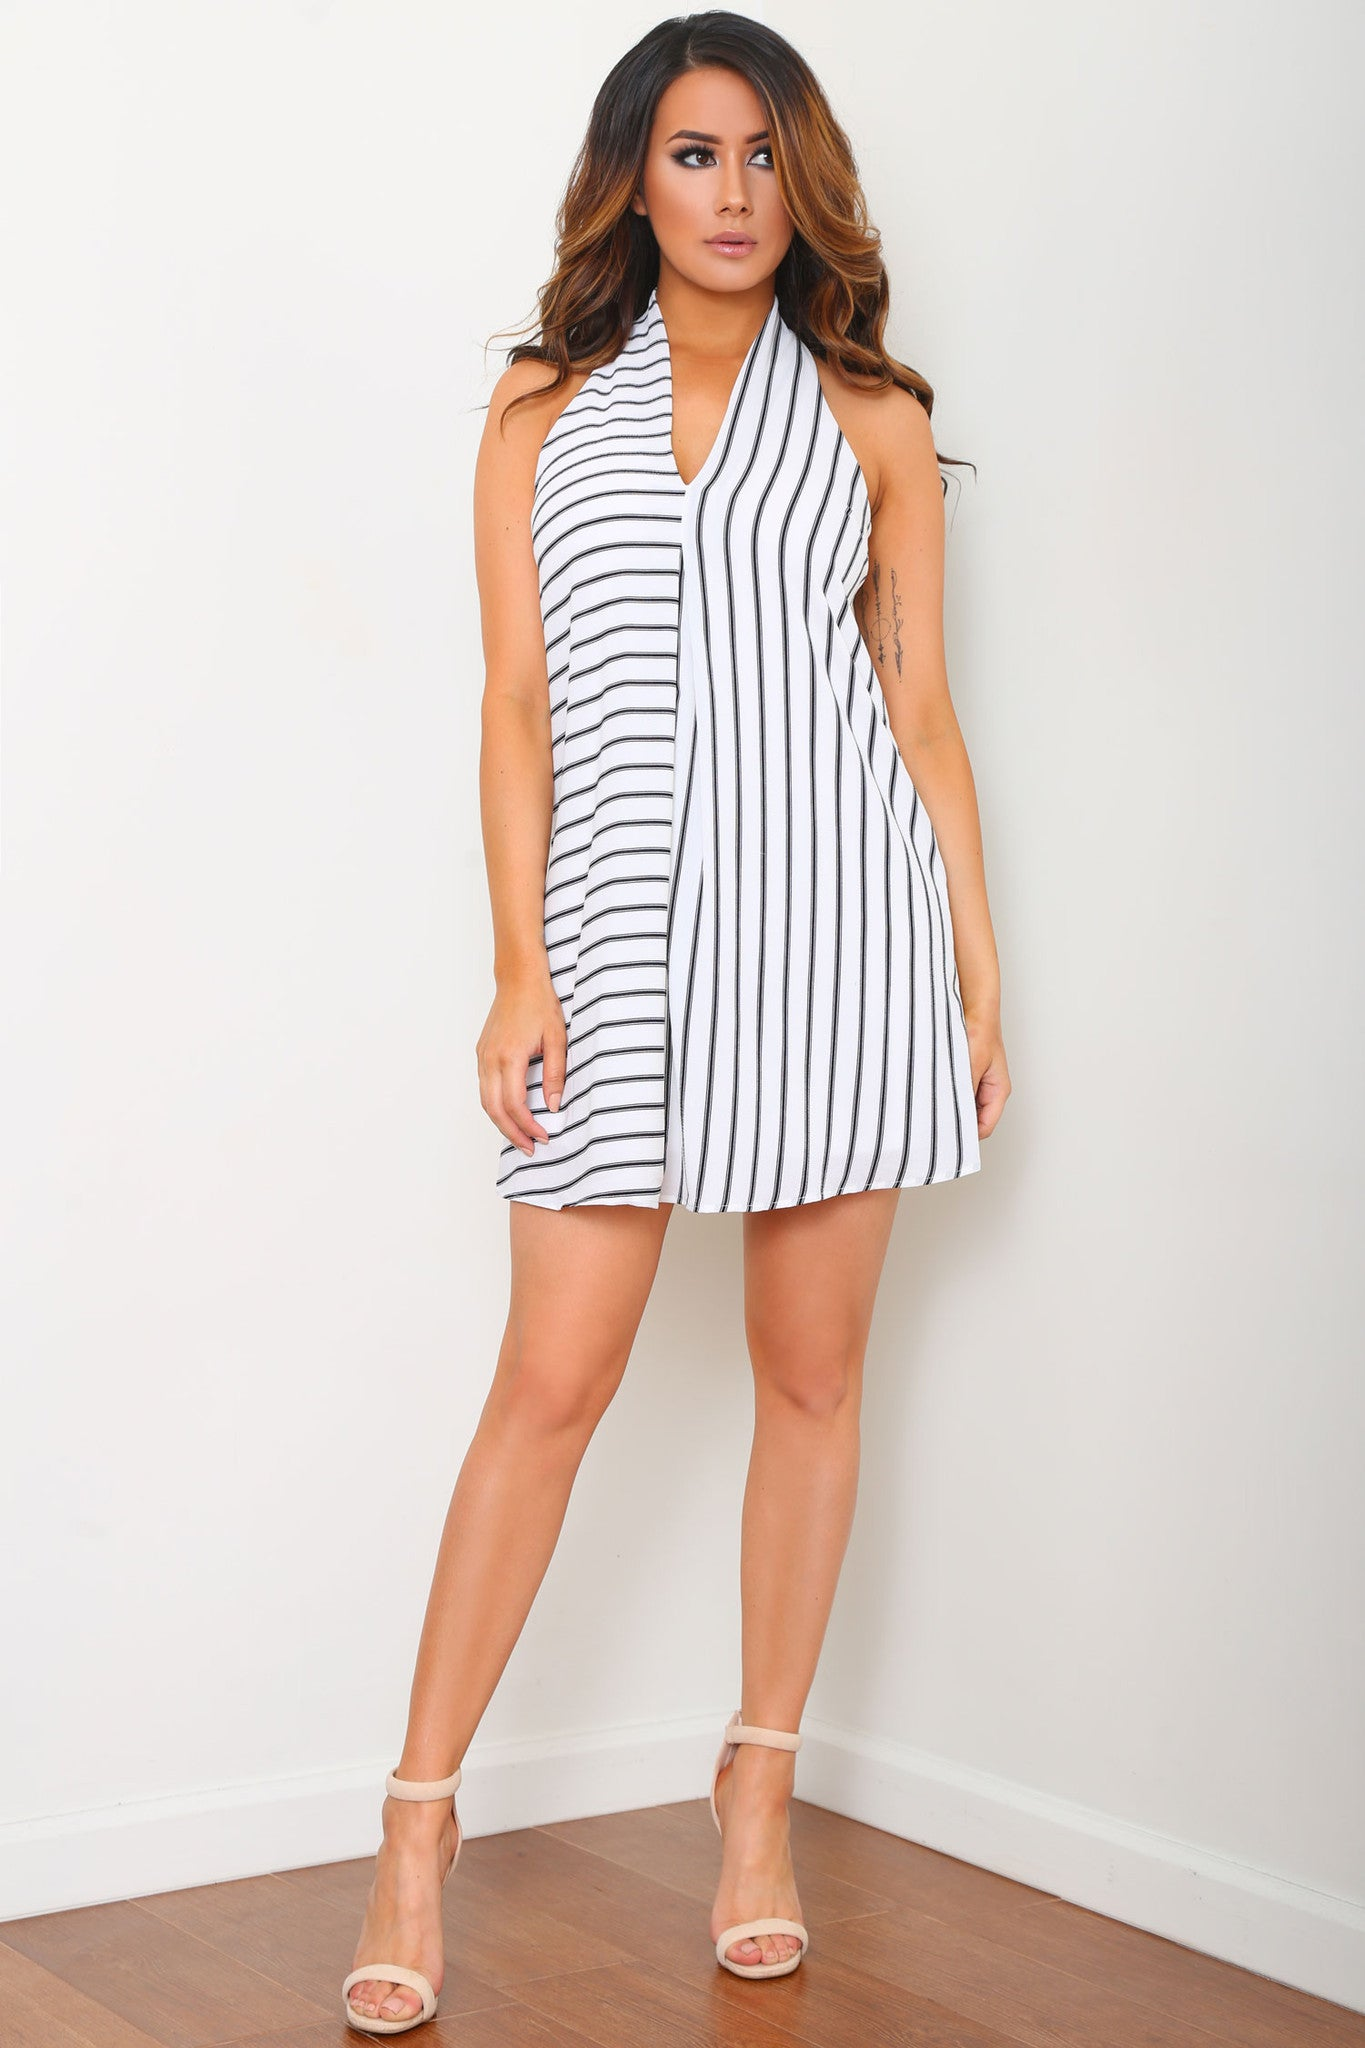 EVELEIGH DRESS - Glam Envy - 1